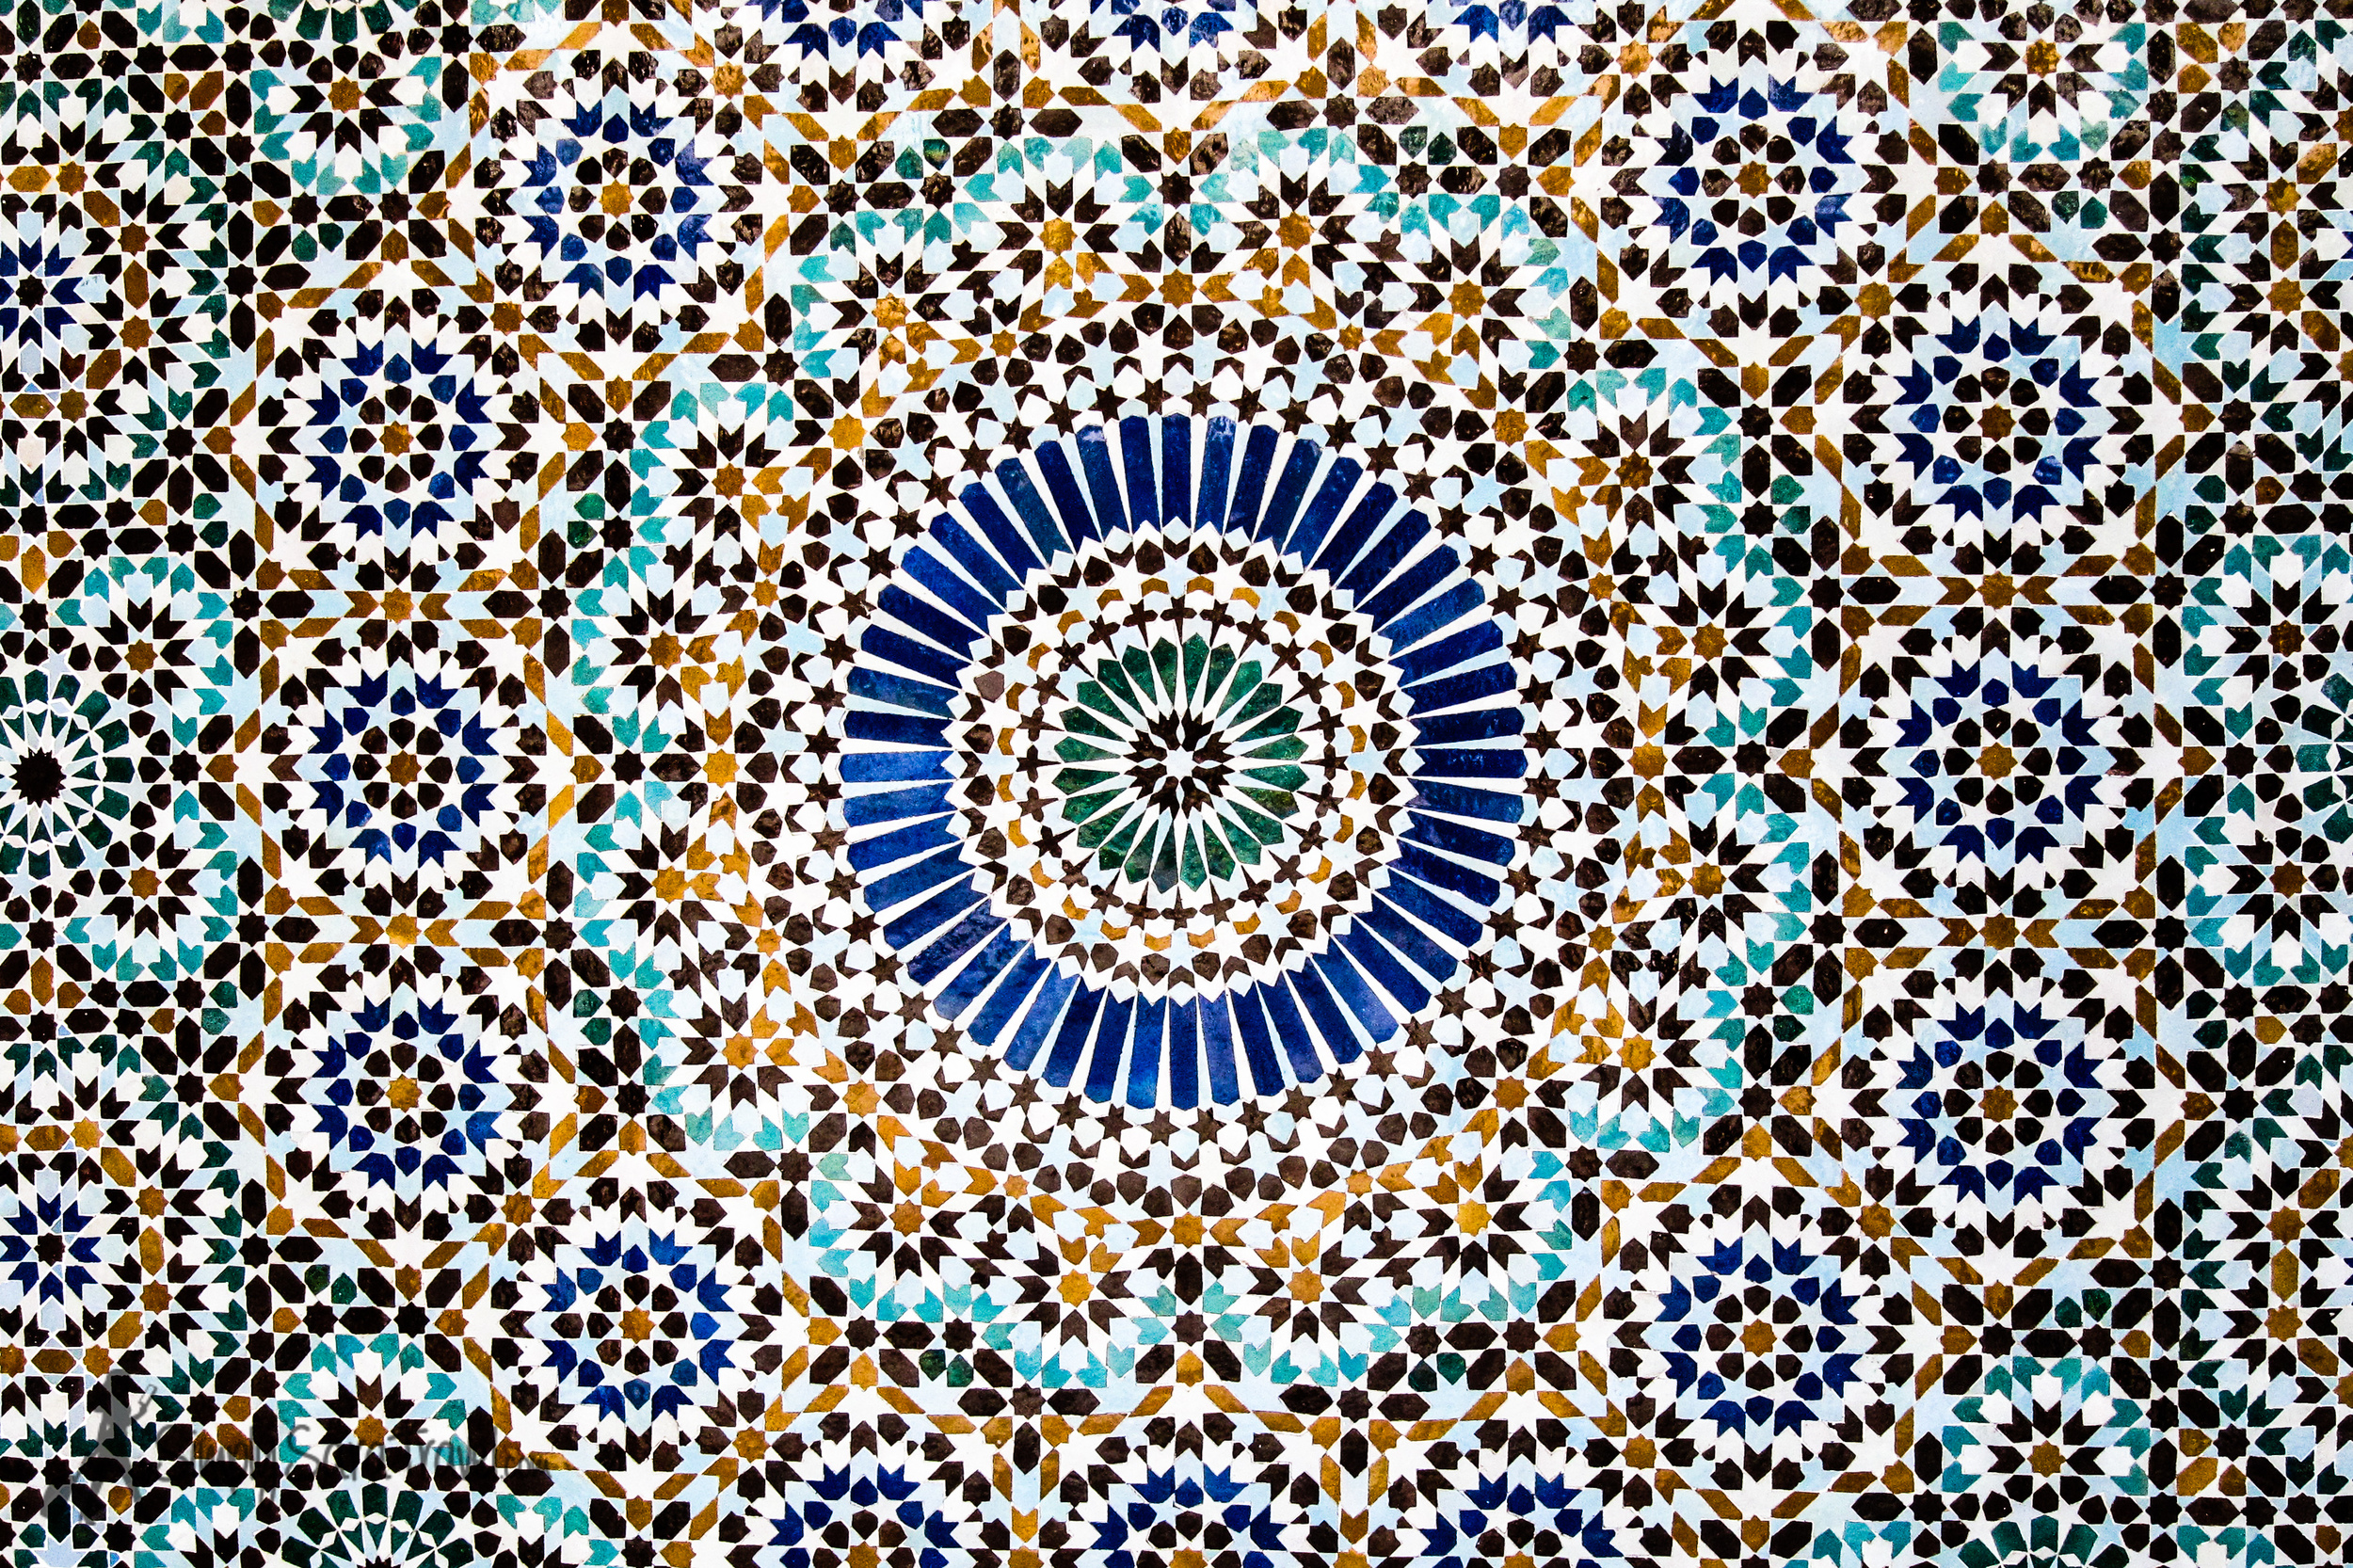 Tile in the Grande Mosquee de Paris